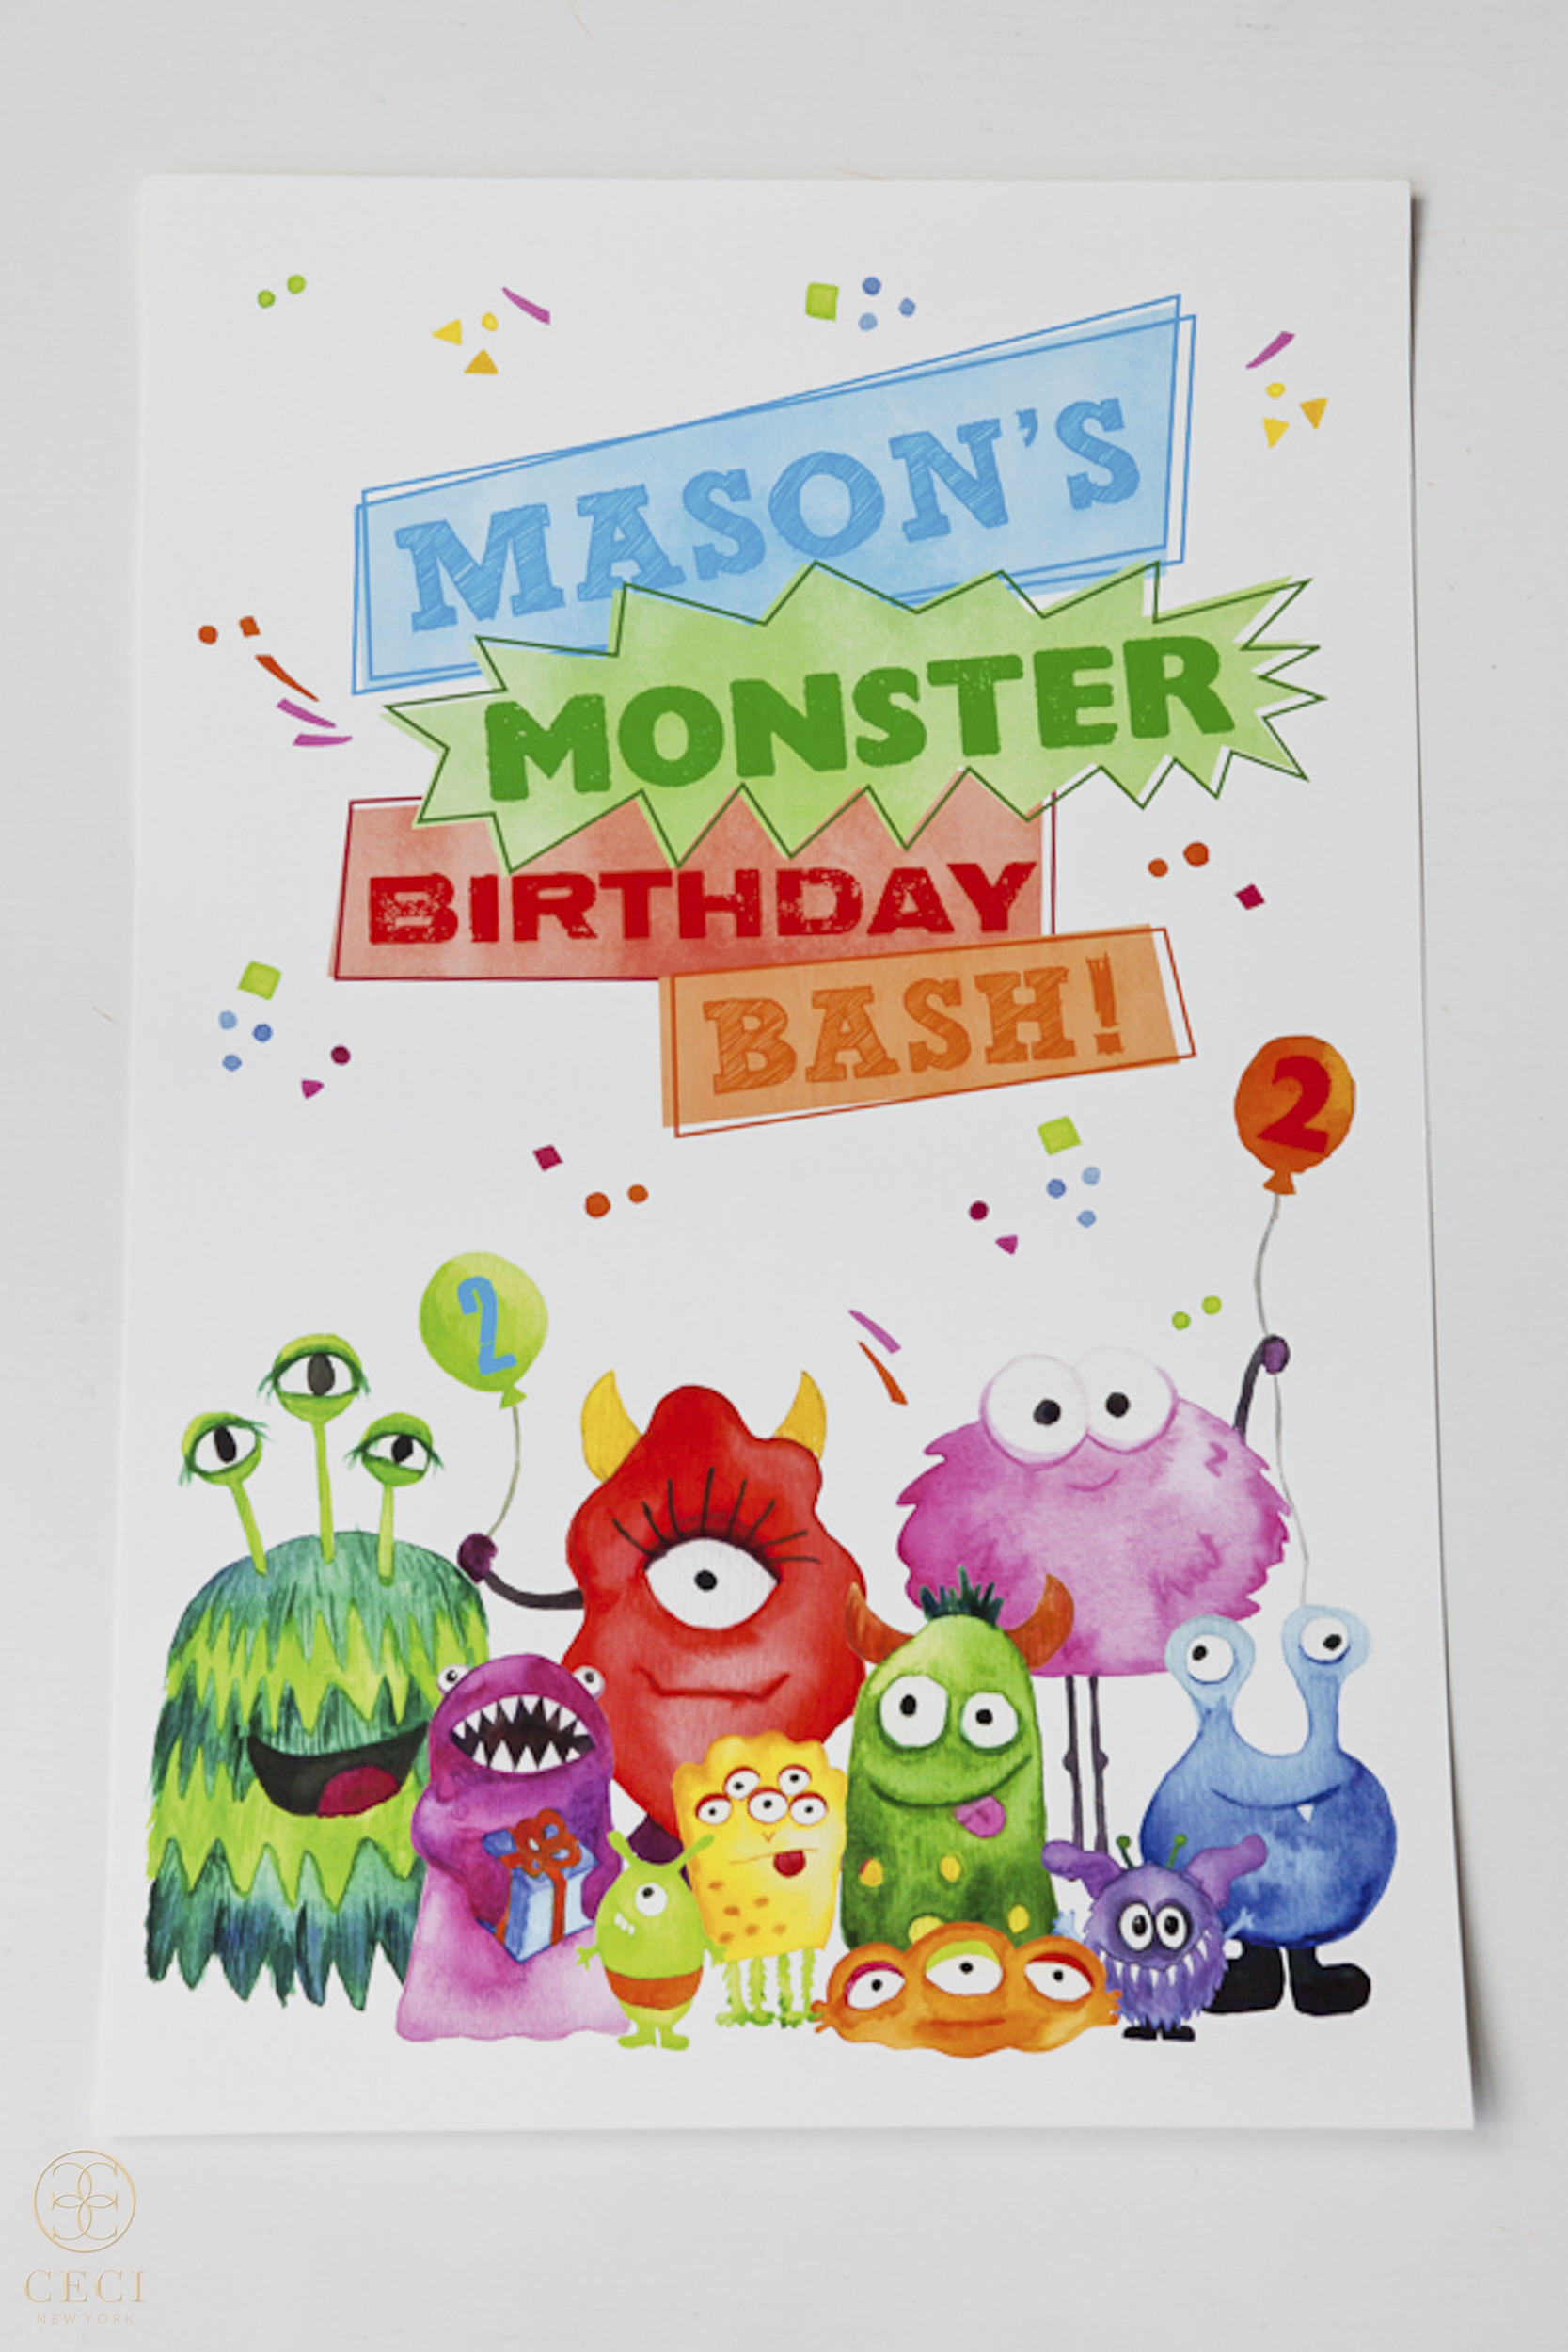 ceci-johnson-mason-birthday-party-2-second-new-york-city-monster-party-theme-kids-cute-creative-characters-13.jpg